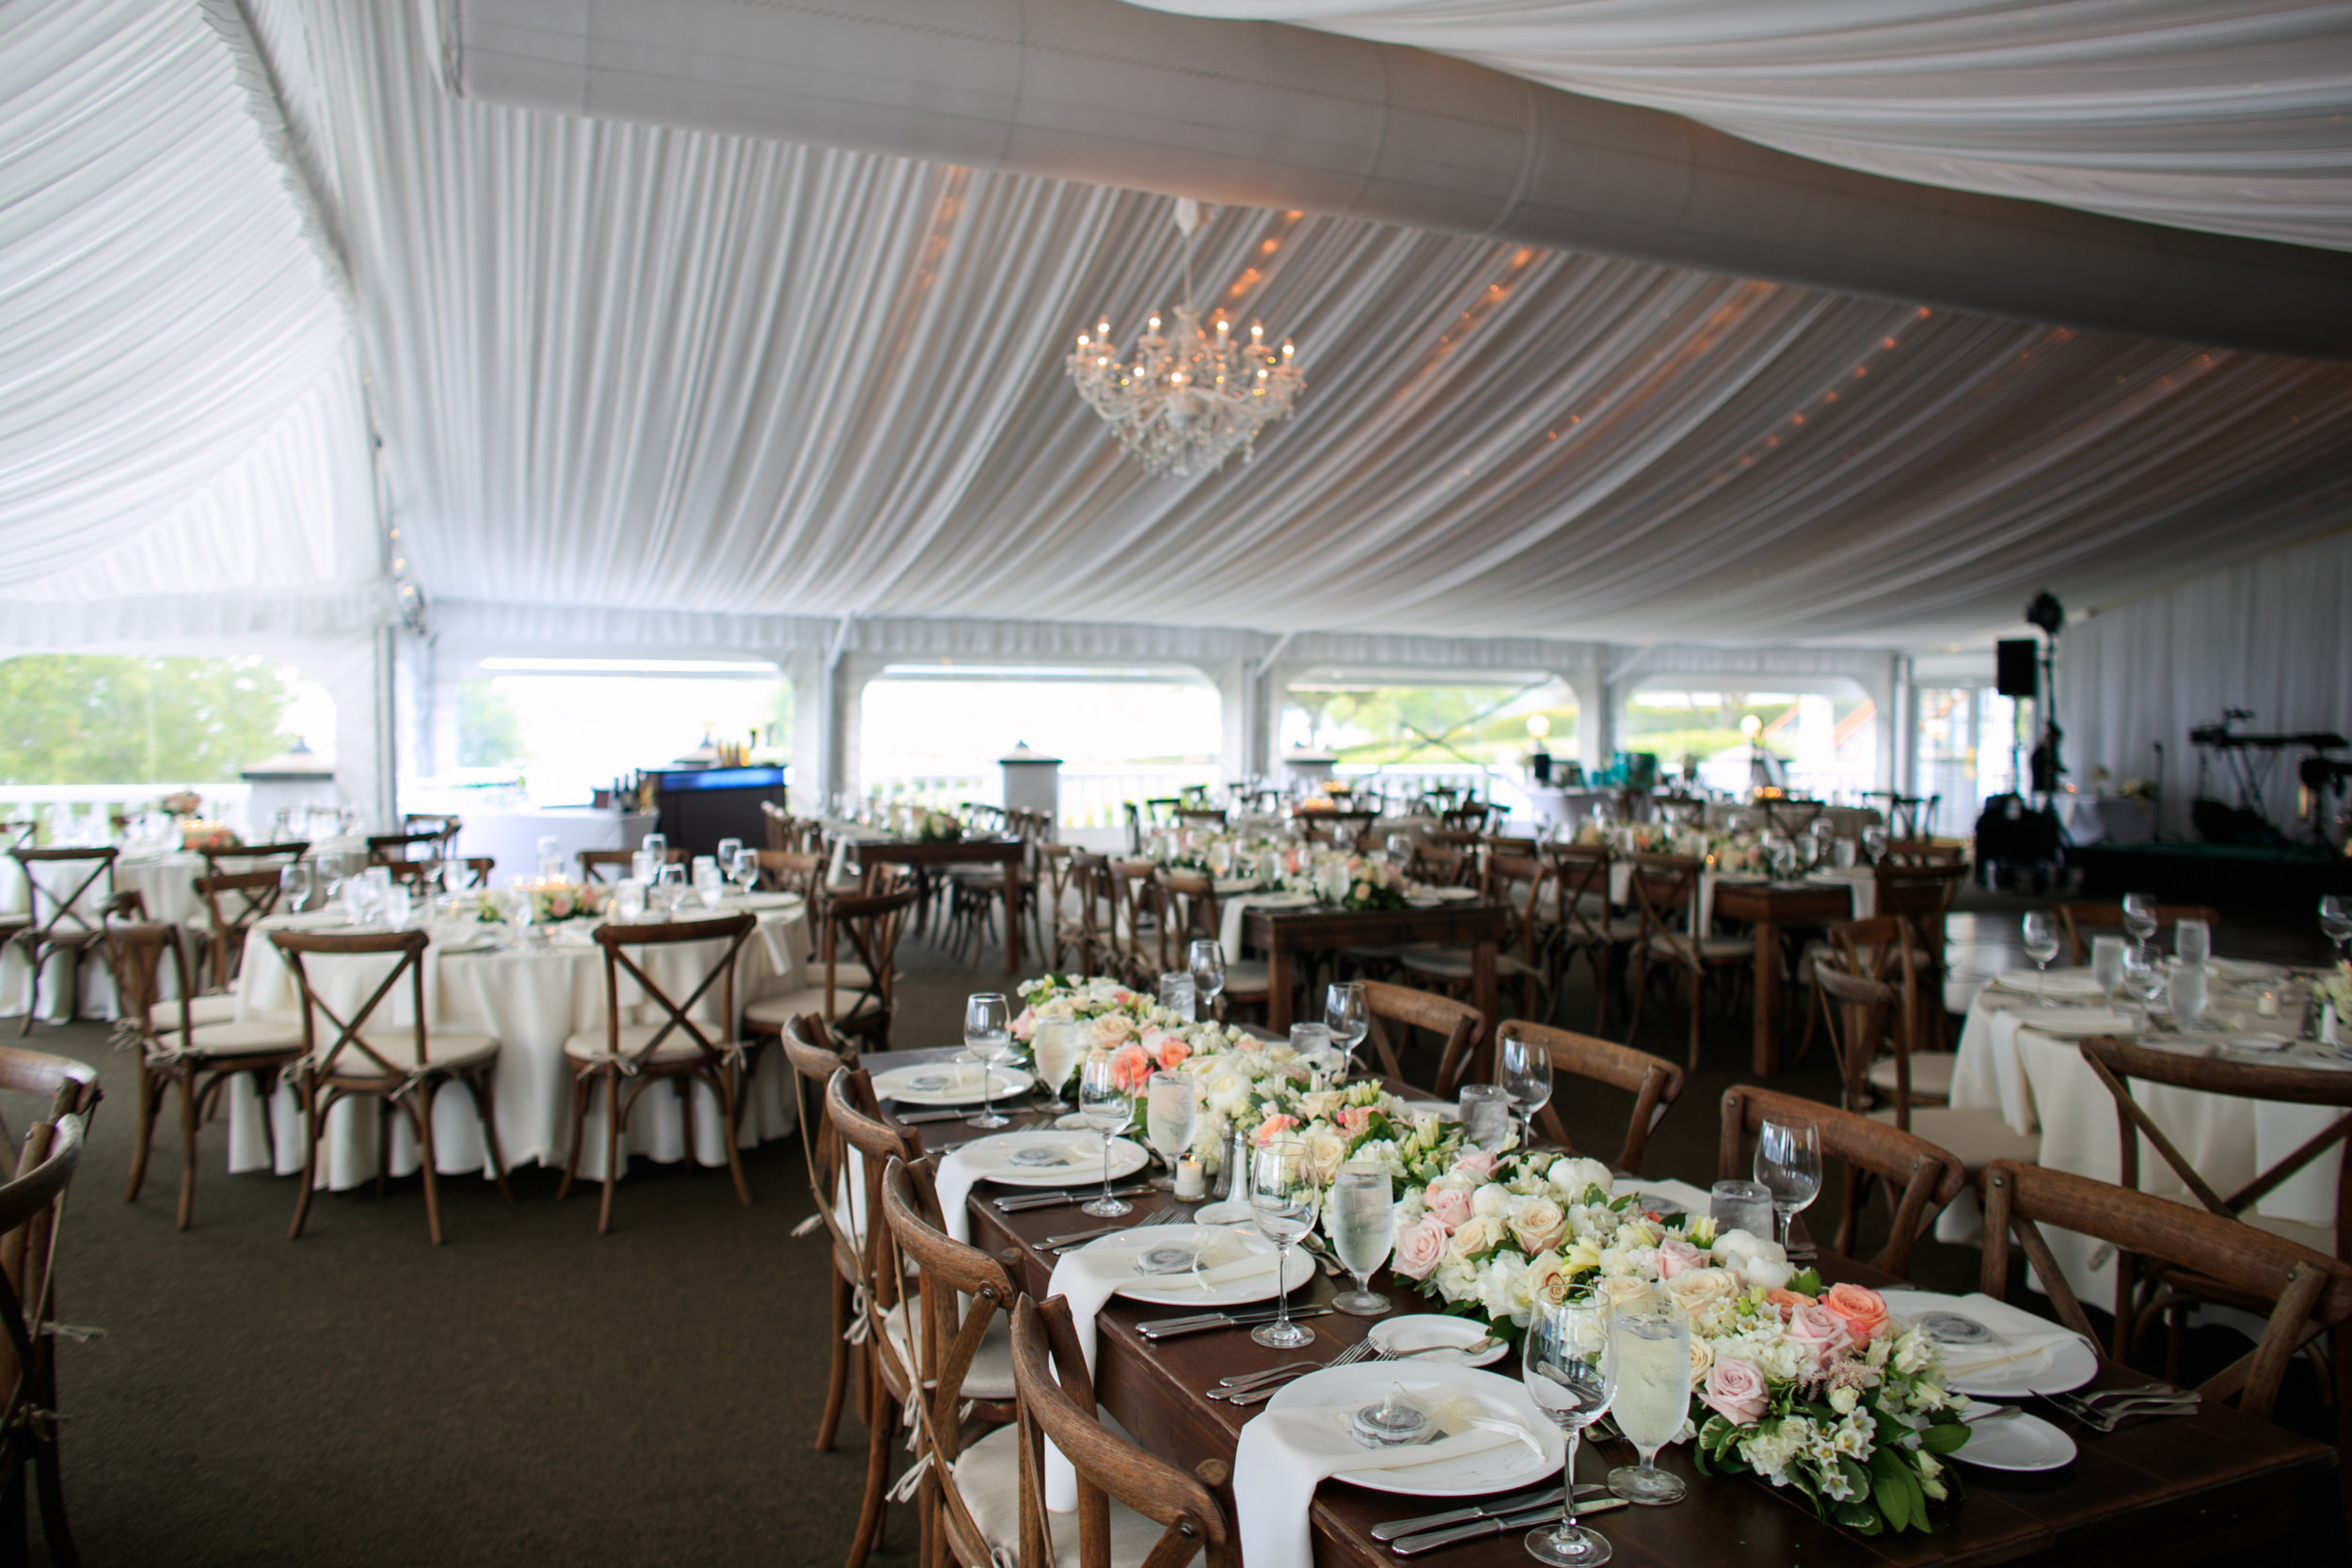 chandeliers, chargers and farm tables used for a tent wedding reception